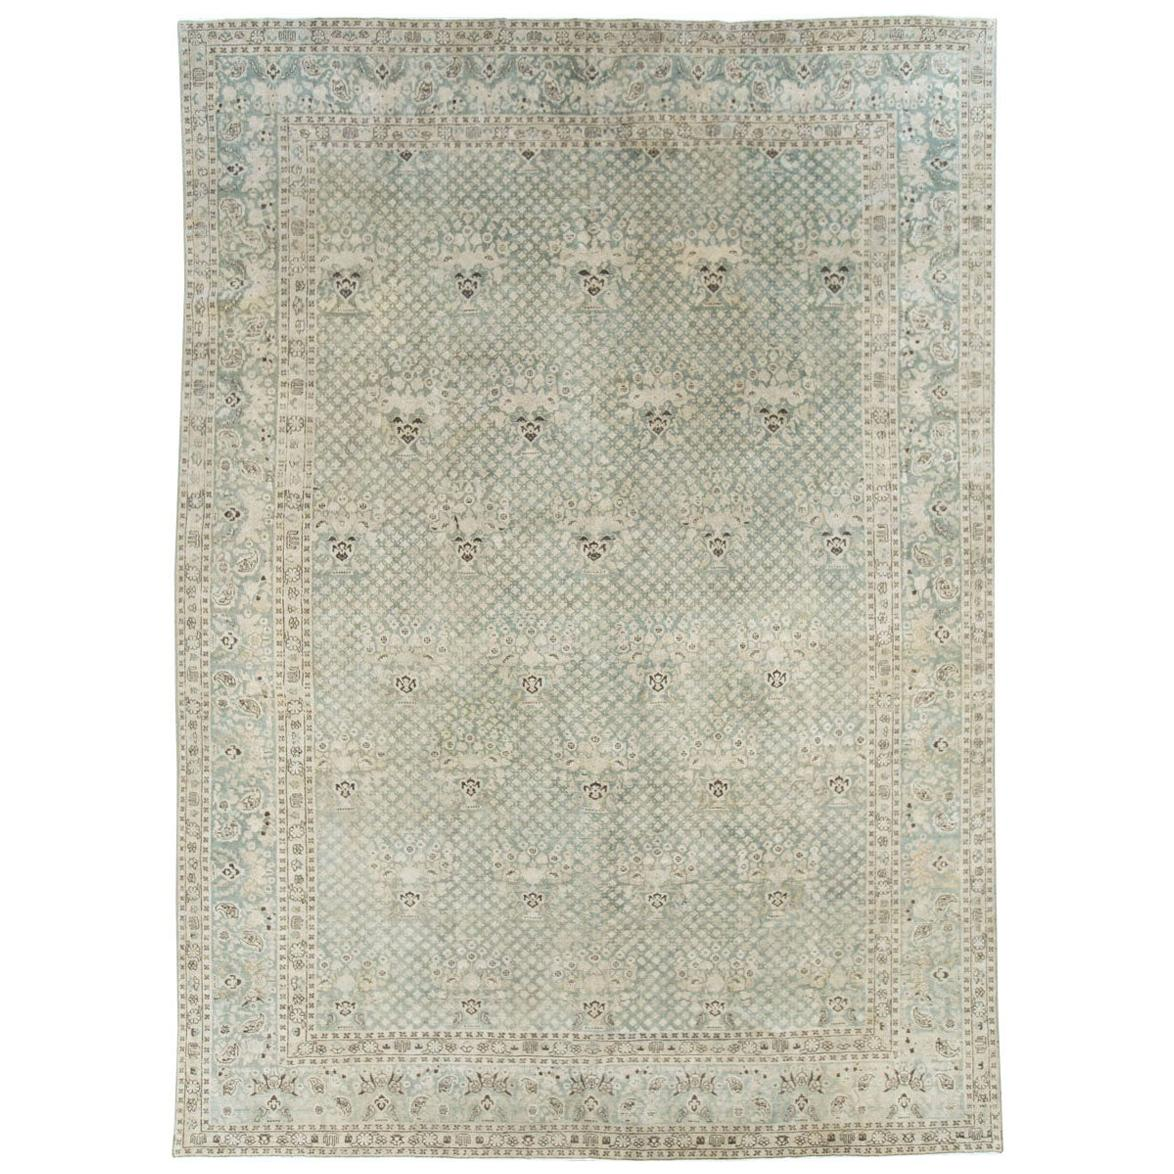 Early 20th Century Handmade Persian Tabriz Room Size Carpet in Blues and Greens